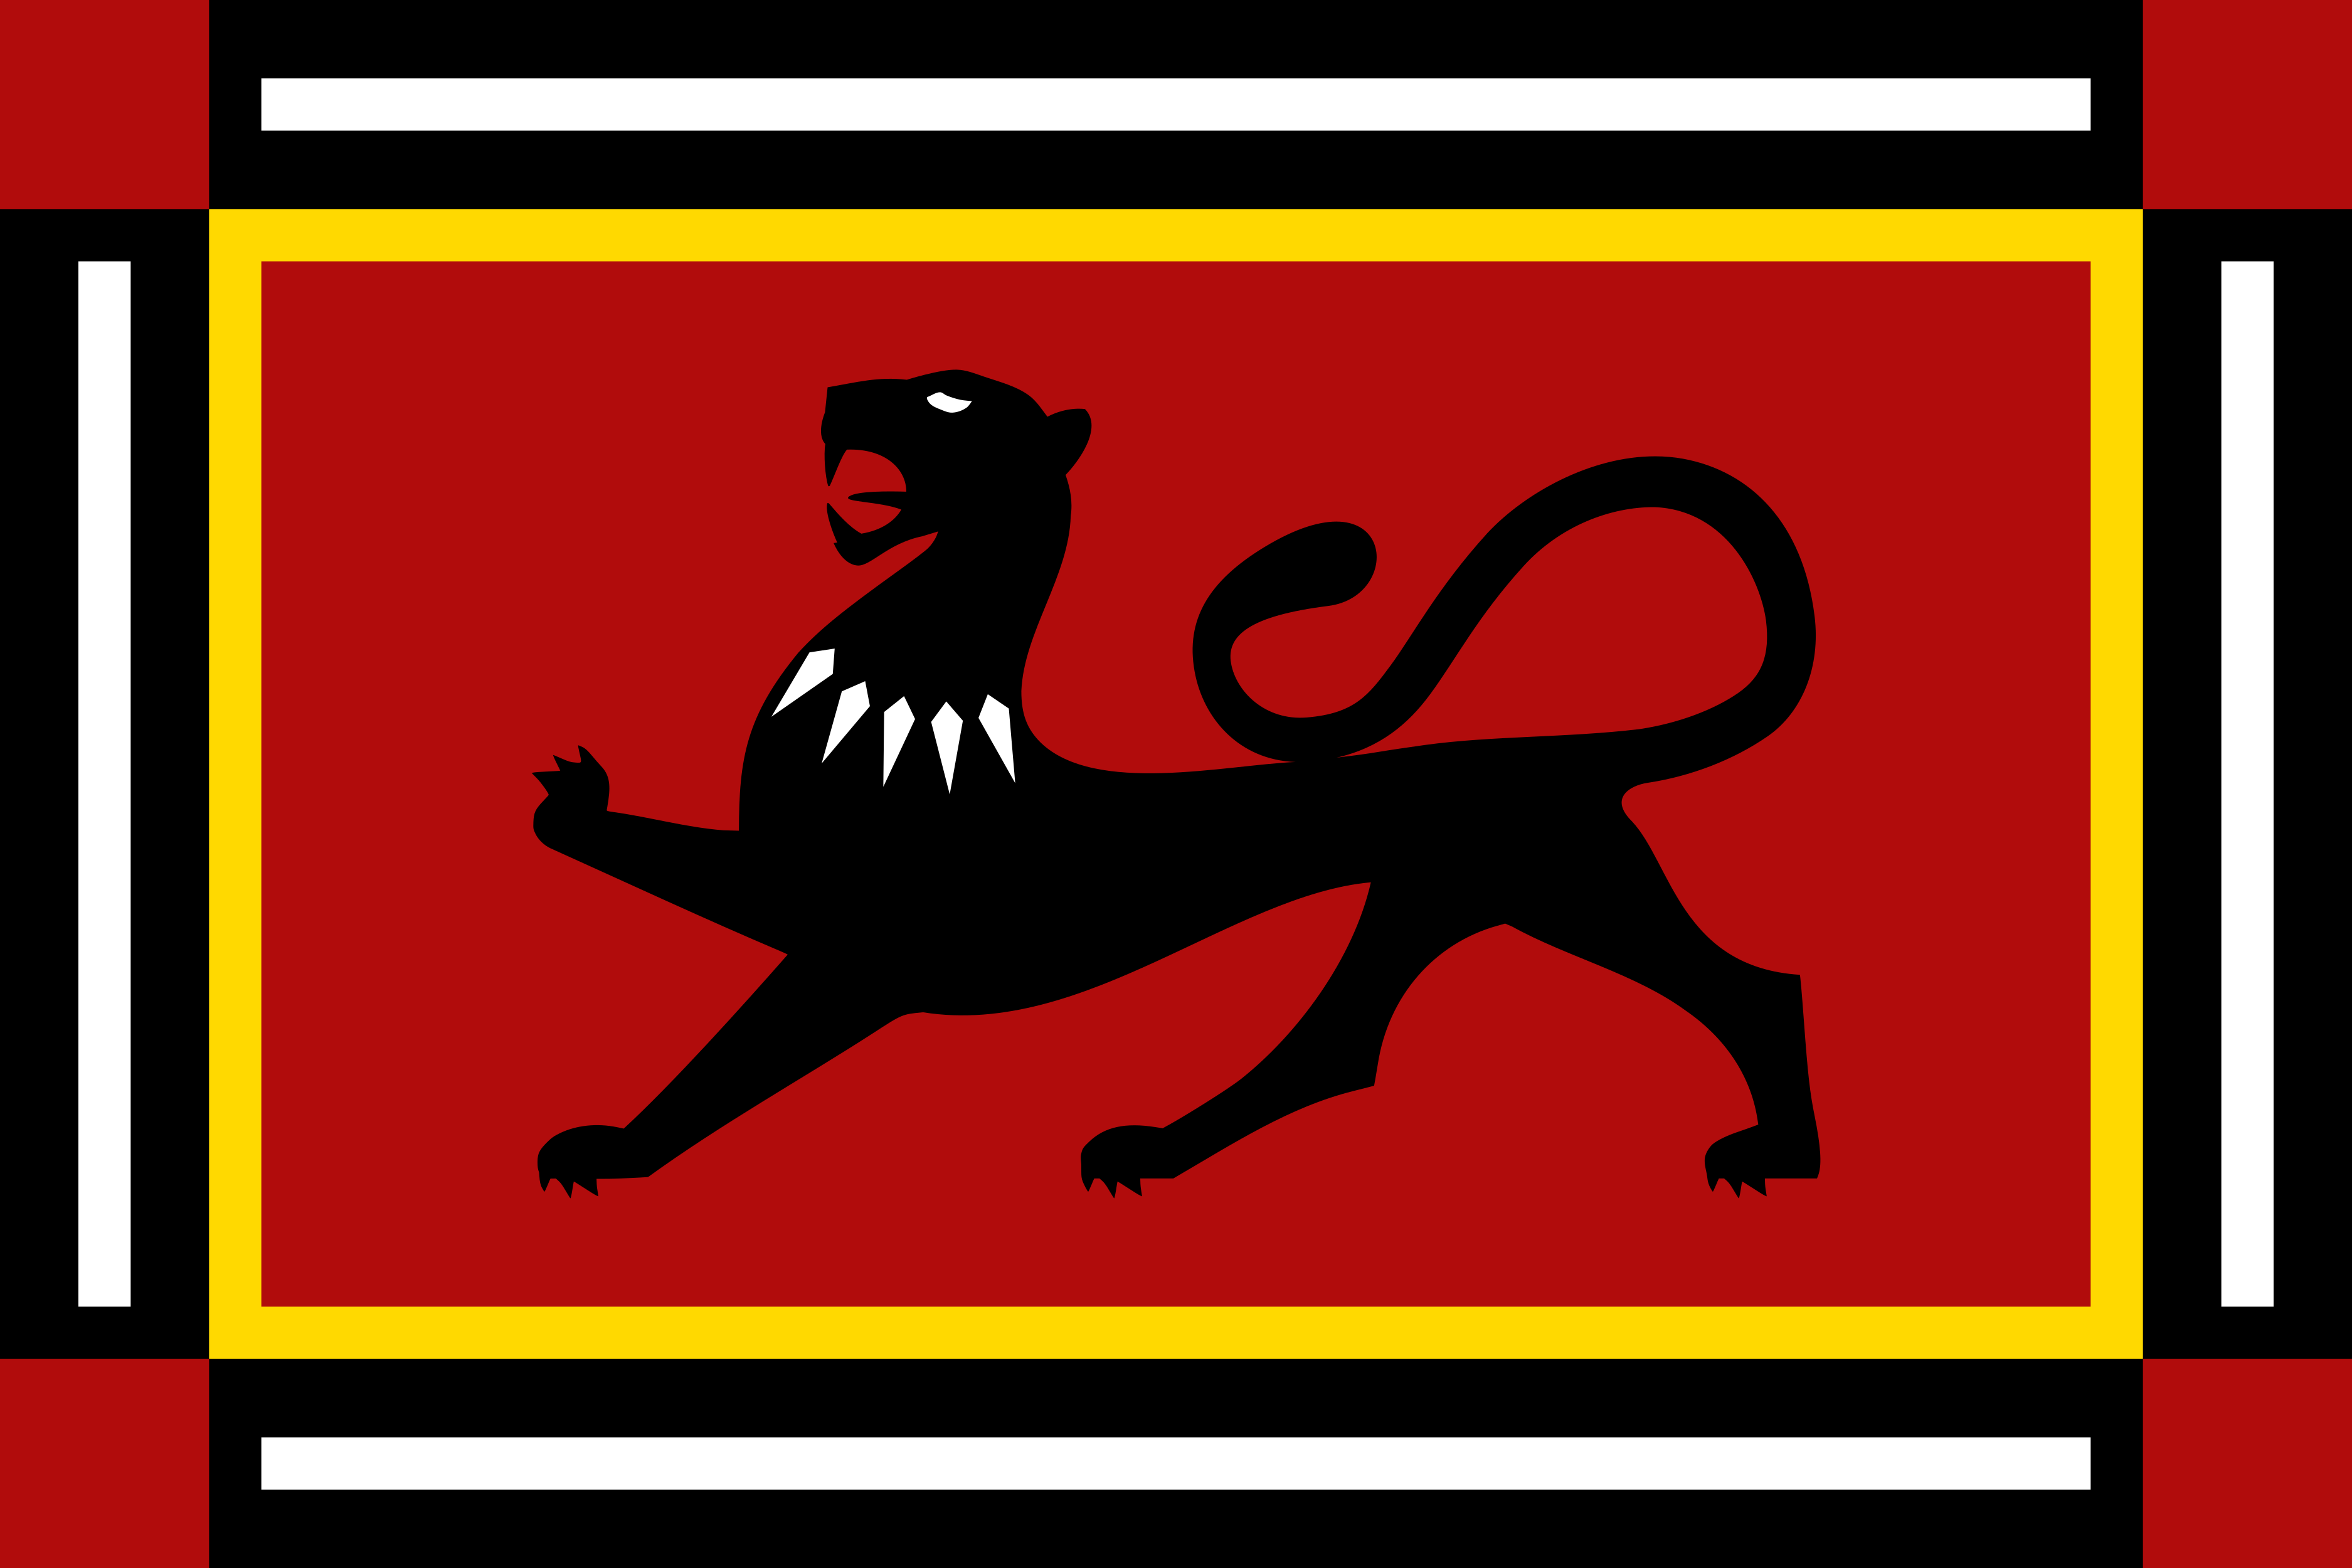 A new more traditional flag for Wakanda in the MCU